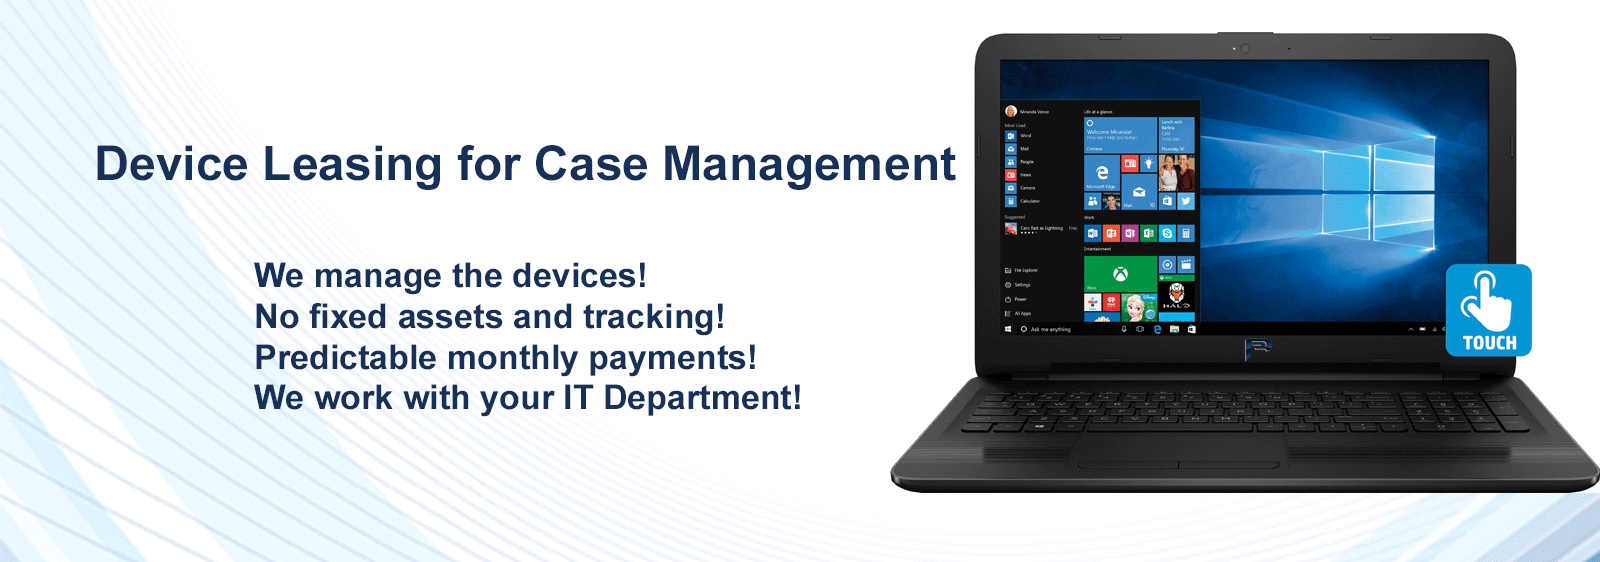 Project 2 Device Leasing and Management